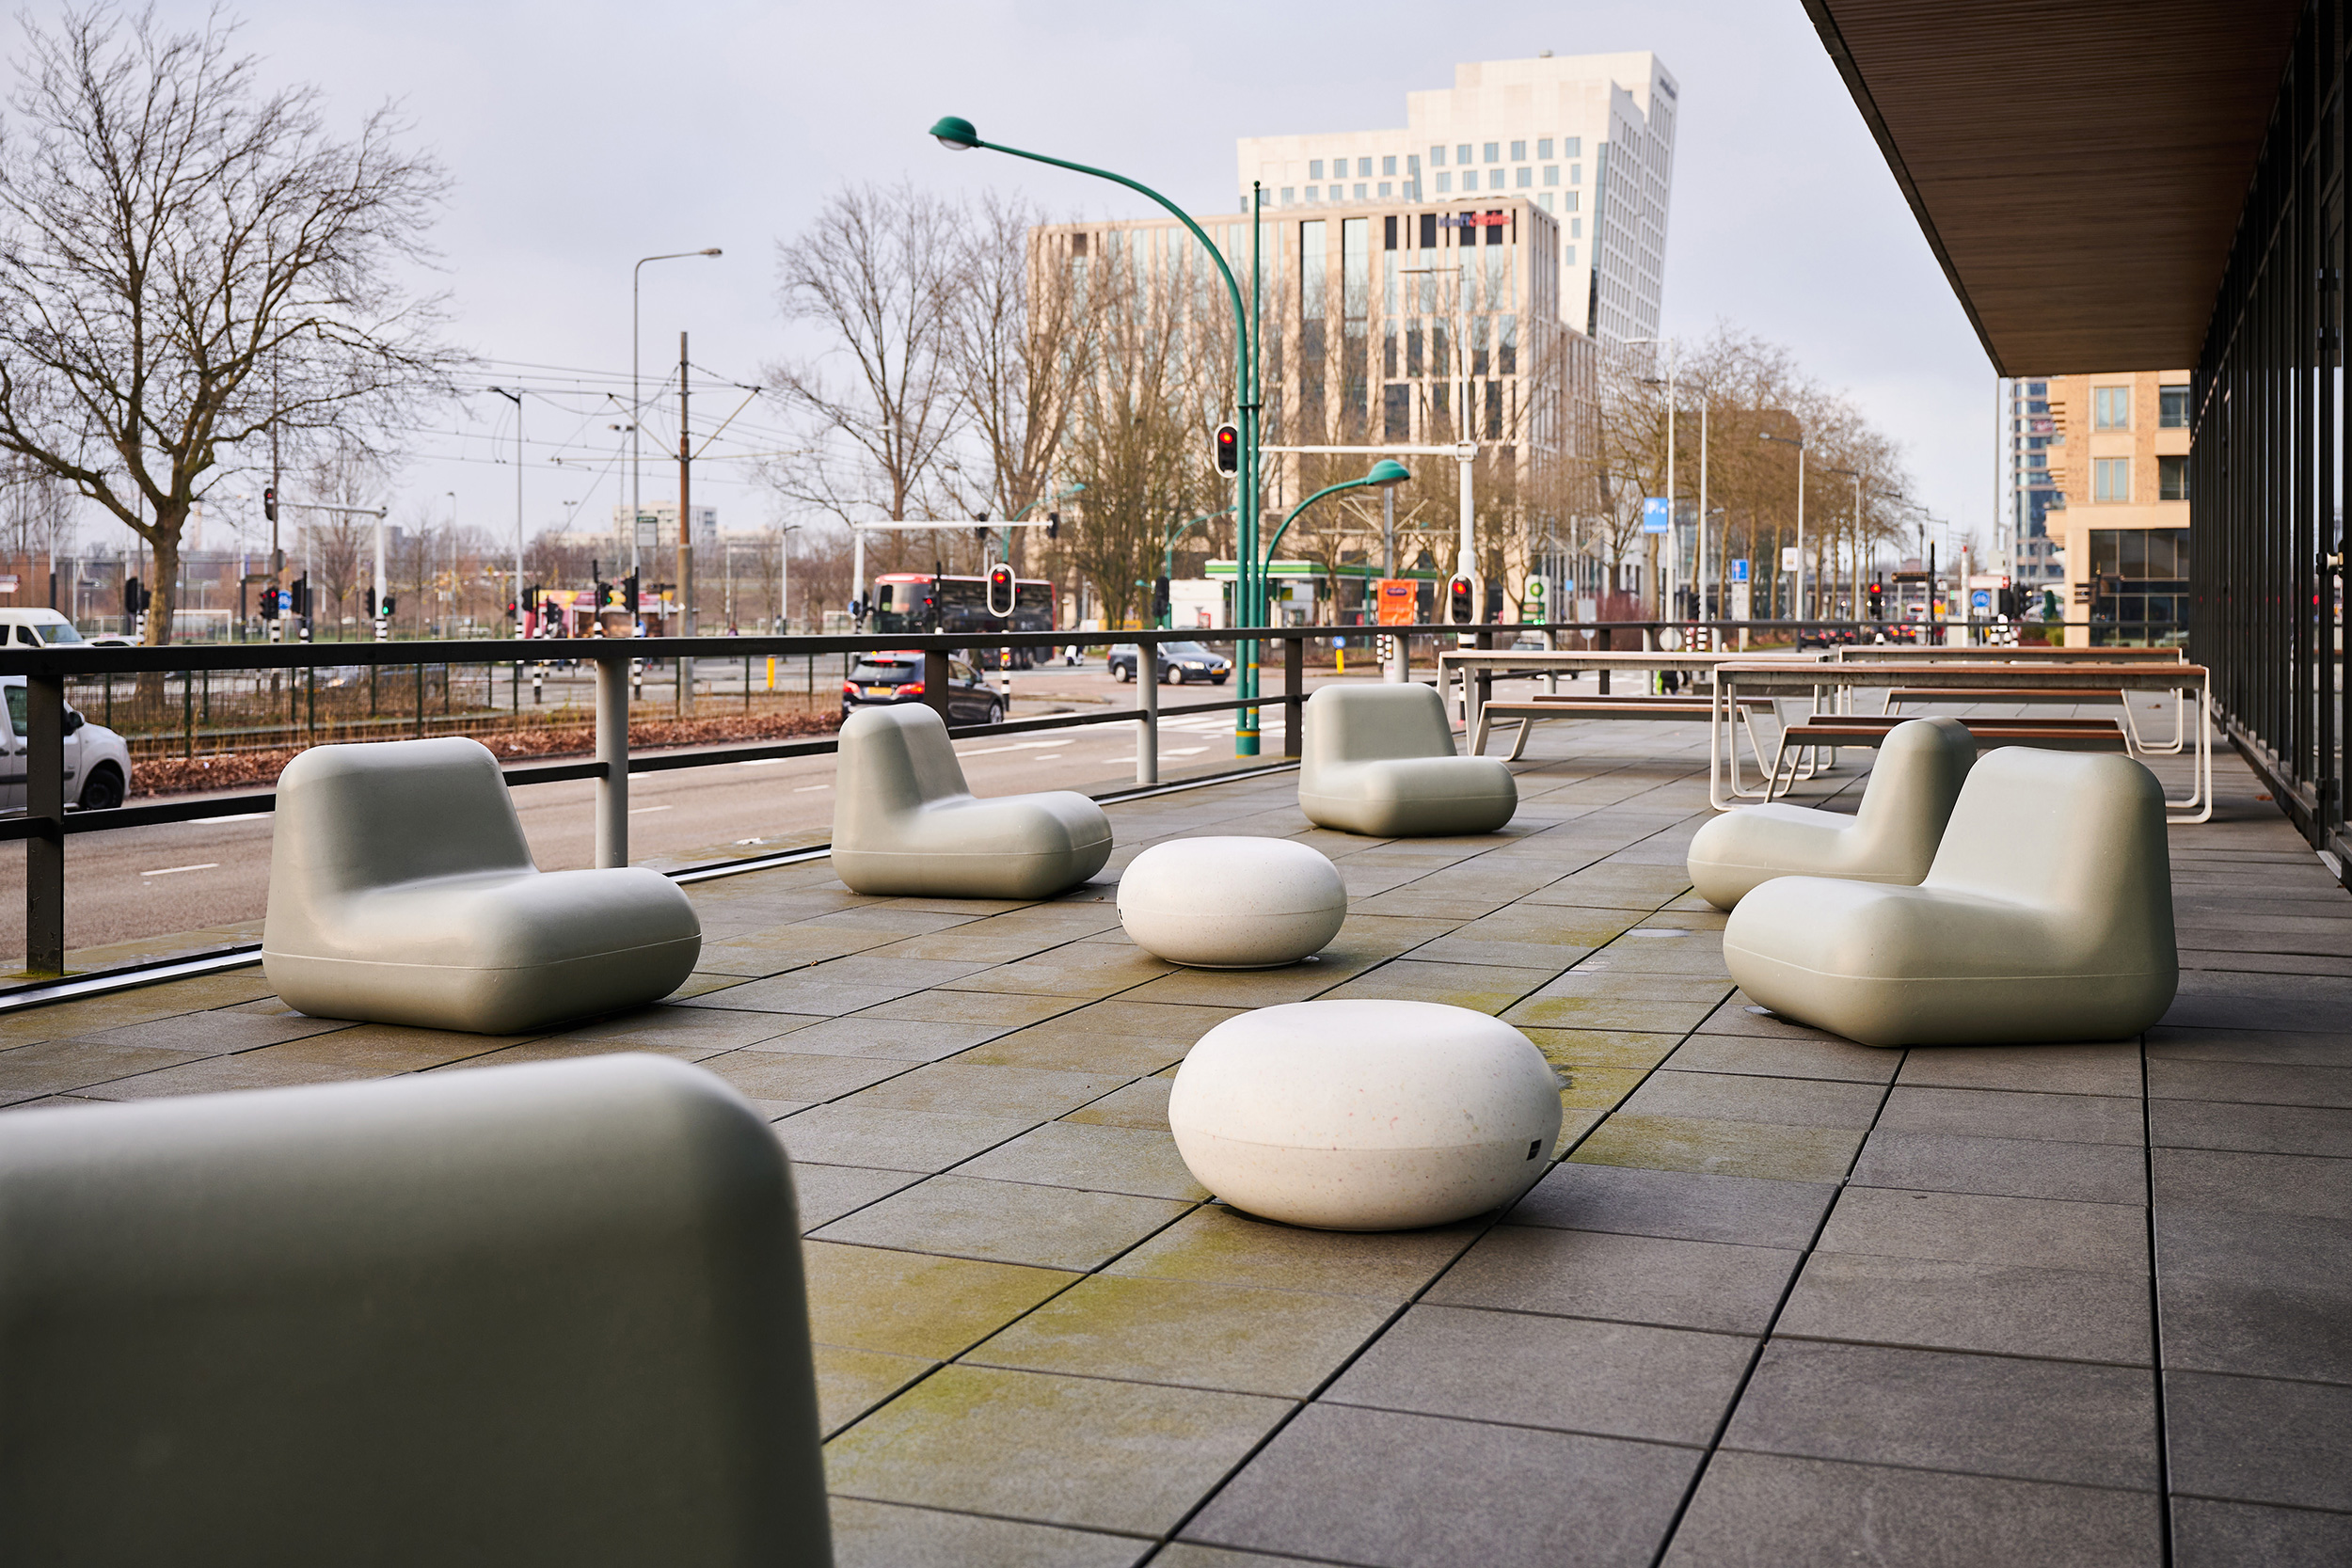 Offices in Zuidas neighbourhood in Amsterdam, furnished with recycled plastic seats.